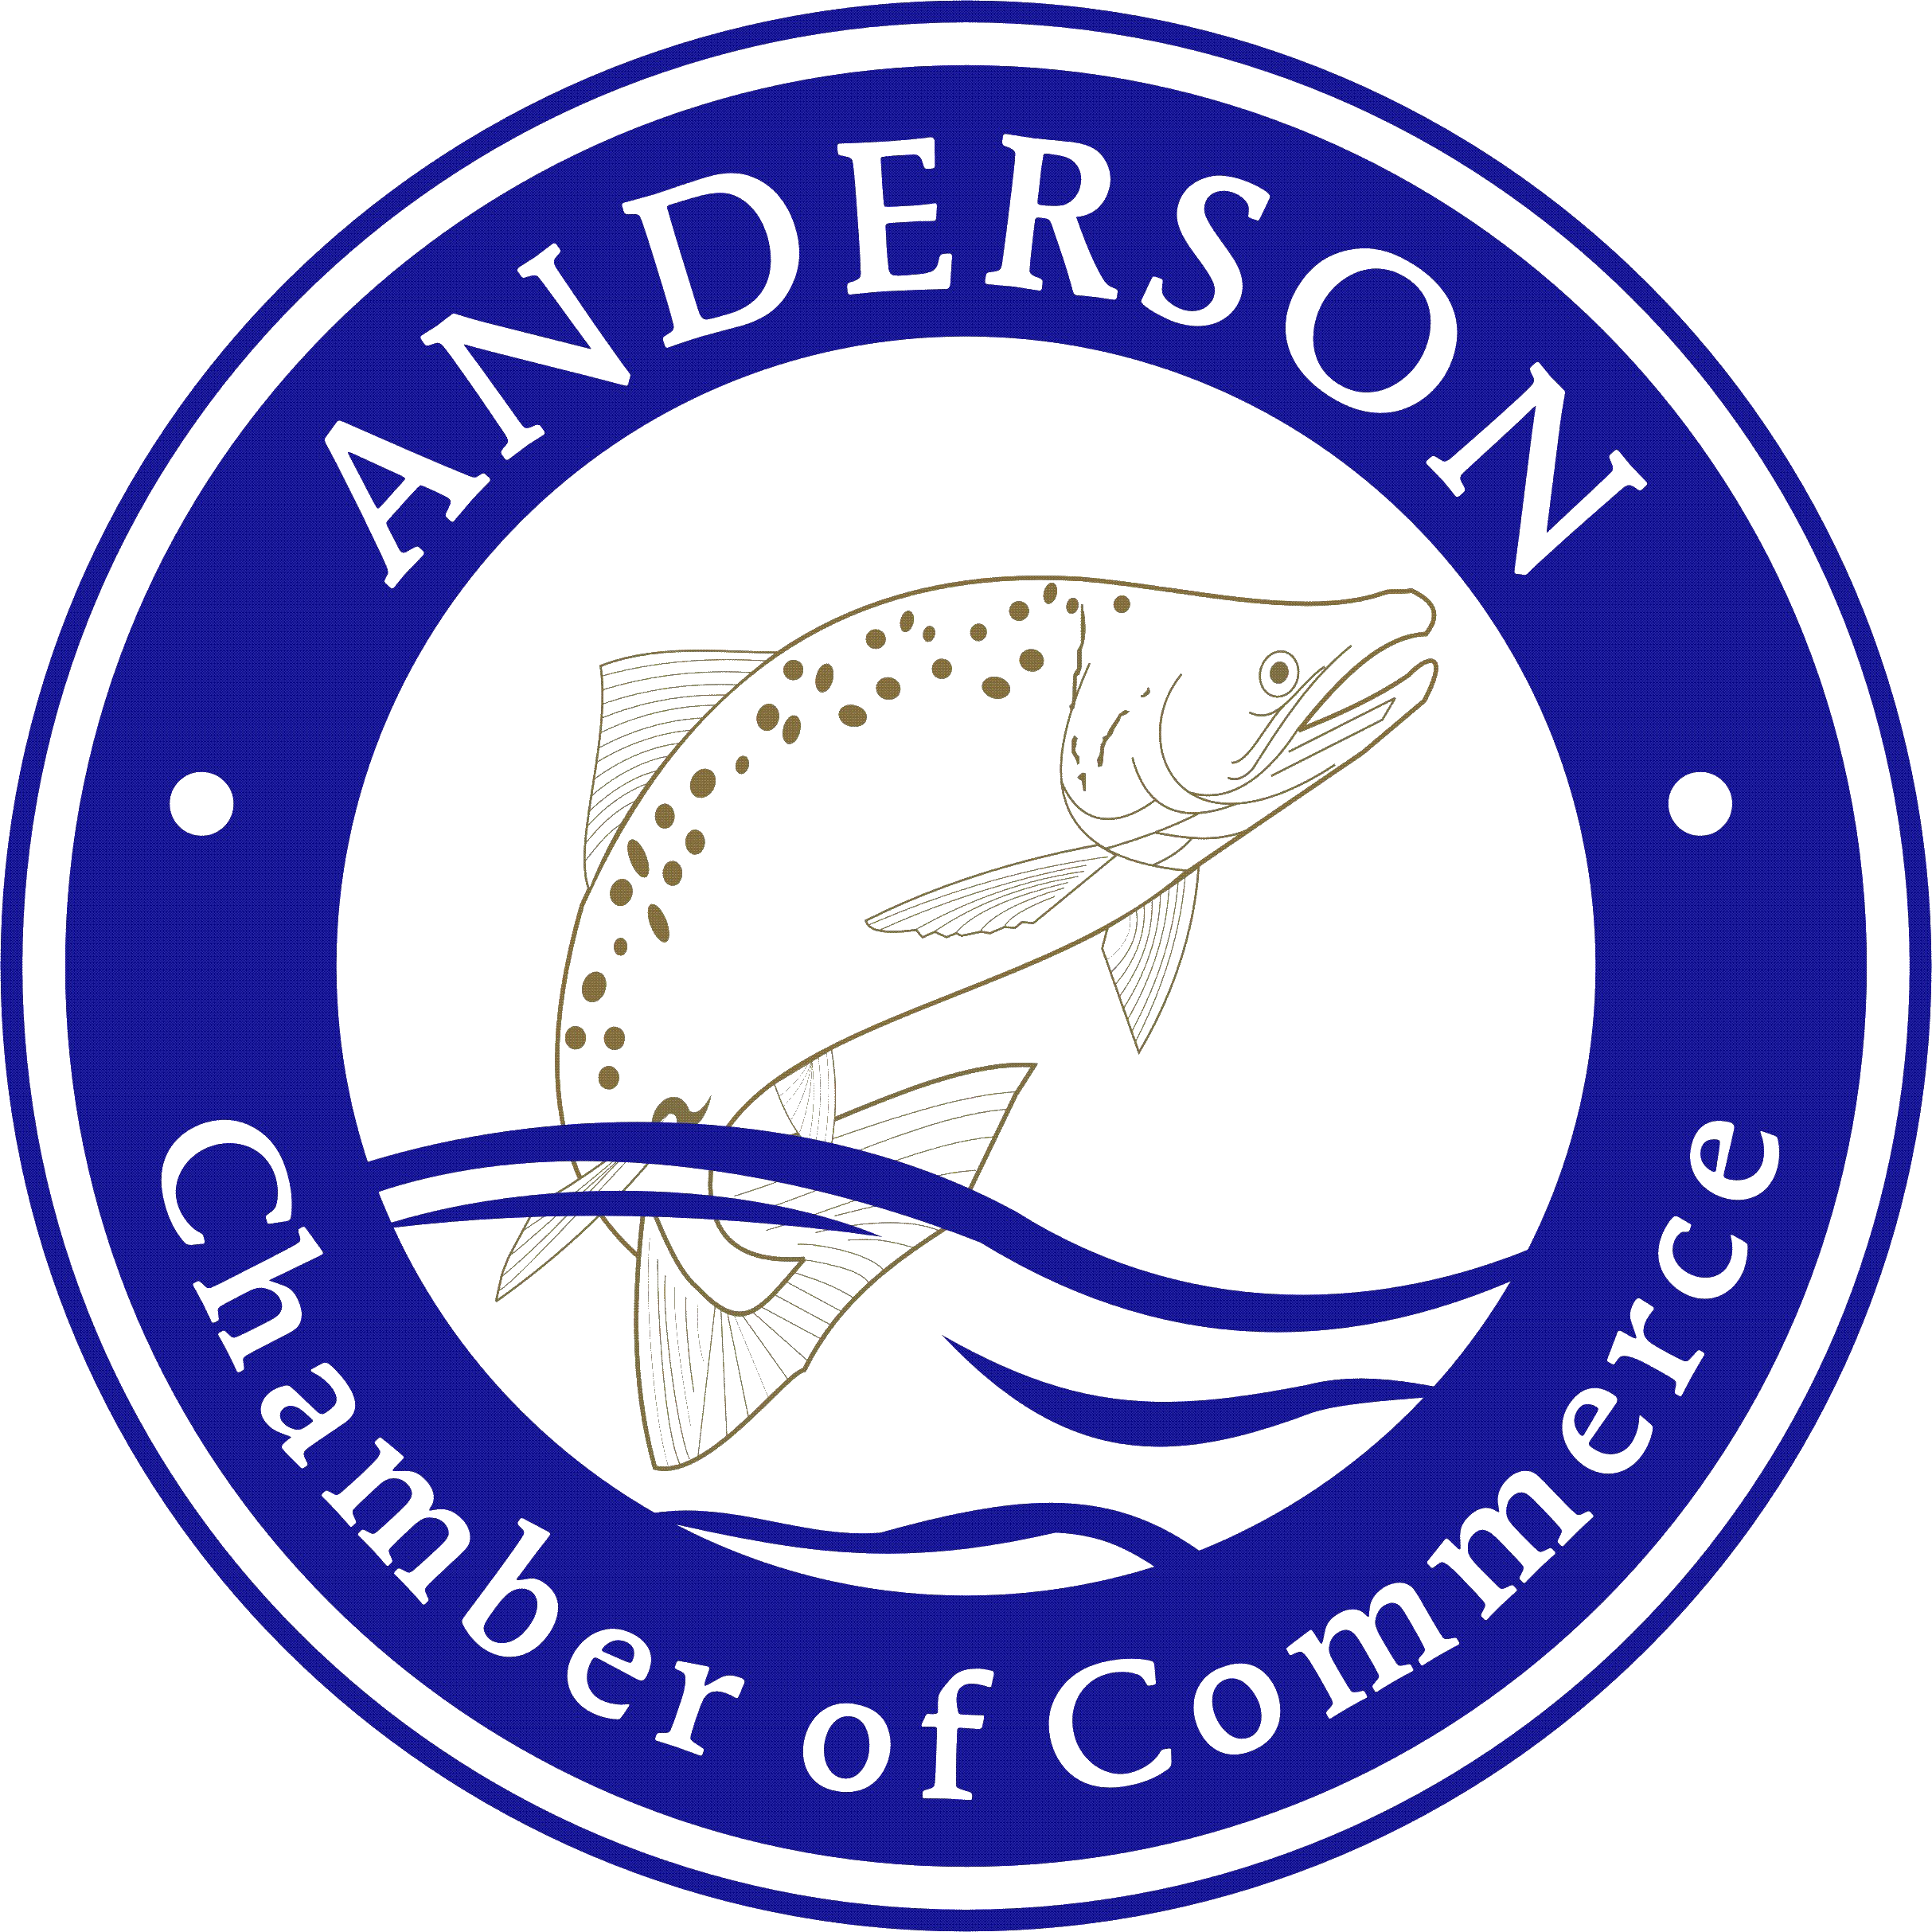 Contact anderson chamber of commerce for Chamber of commerce